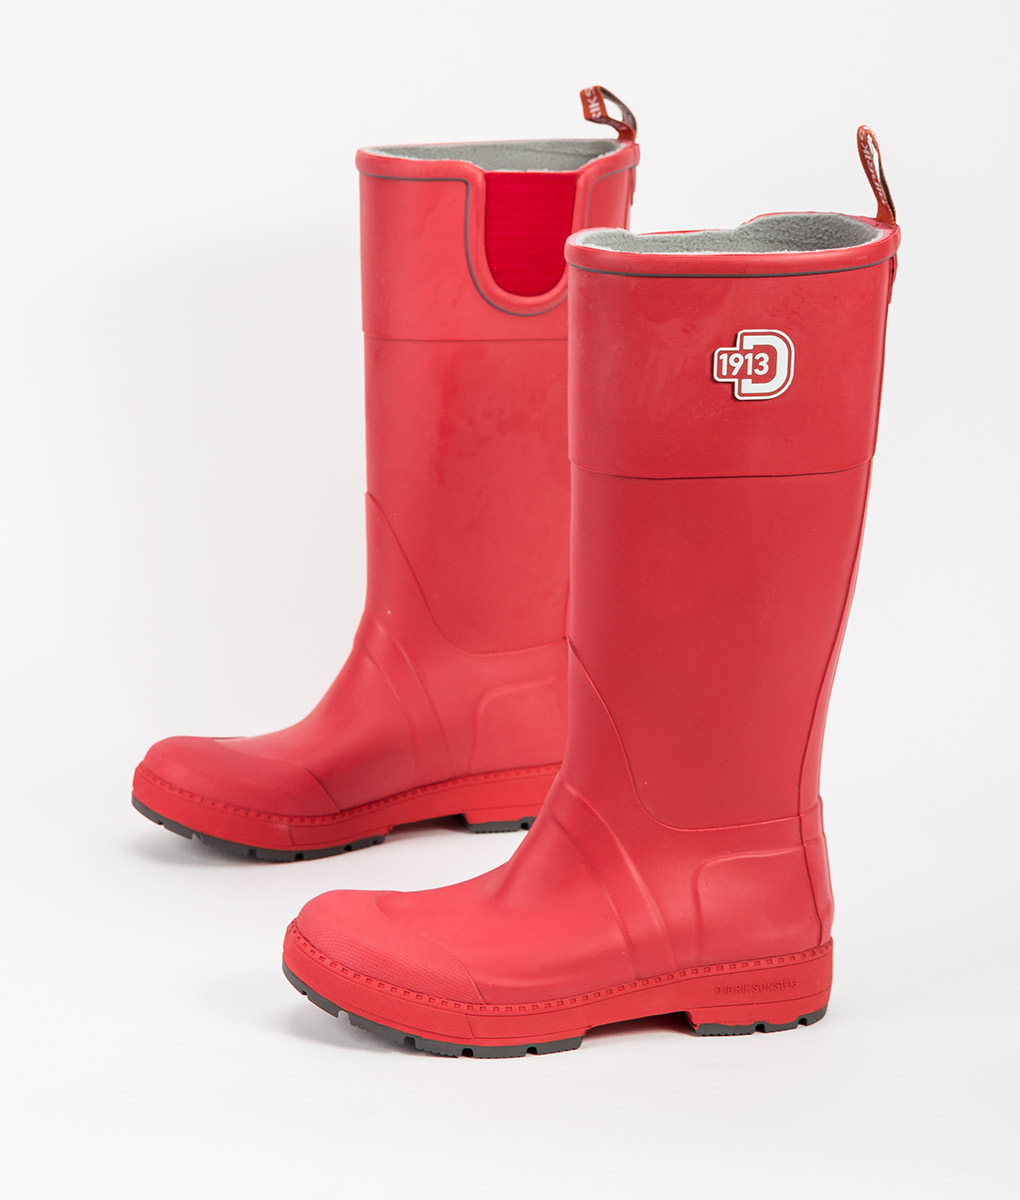 DIDRIKSONS Women Rain Boots KOSTER, Flag Red 109.99